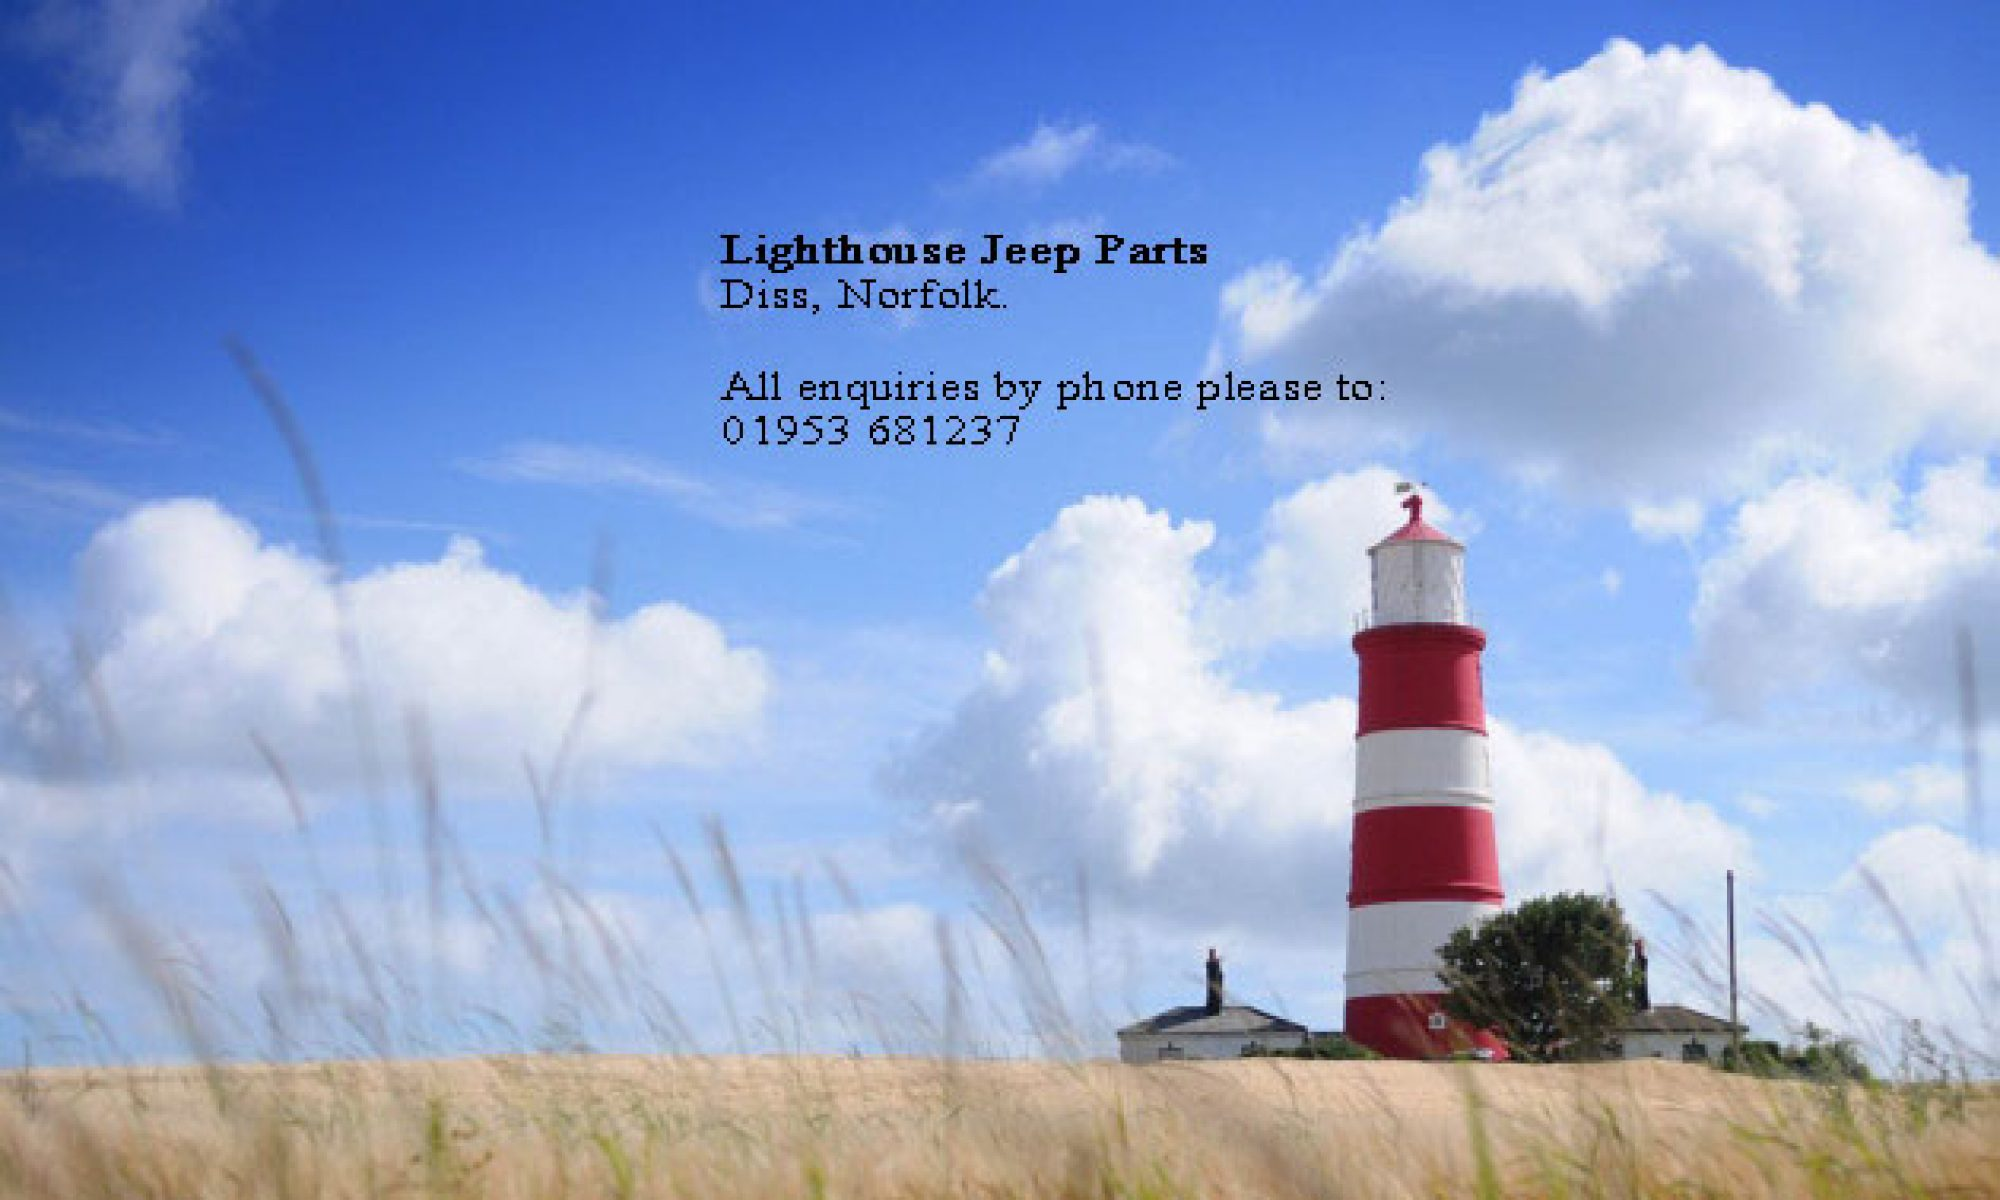 Lighthouse Jeep Parts